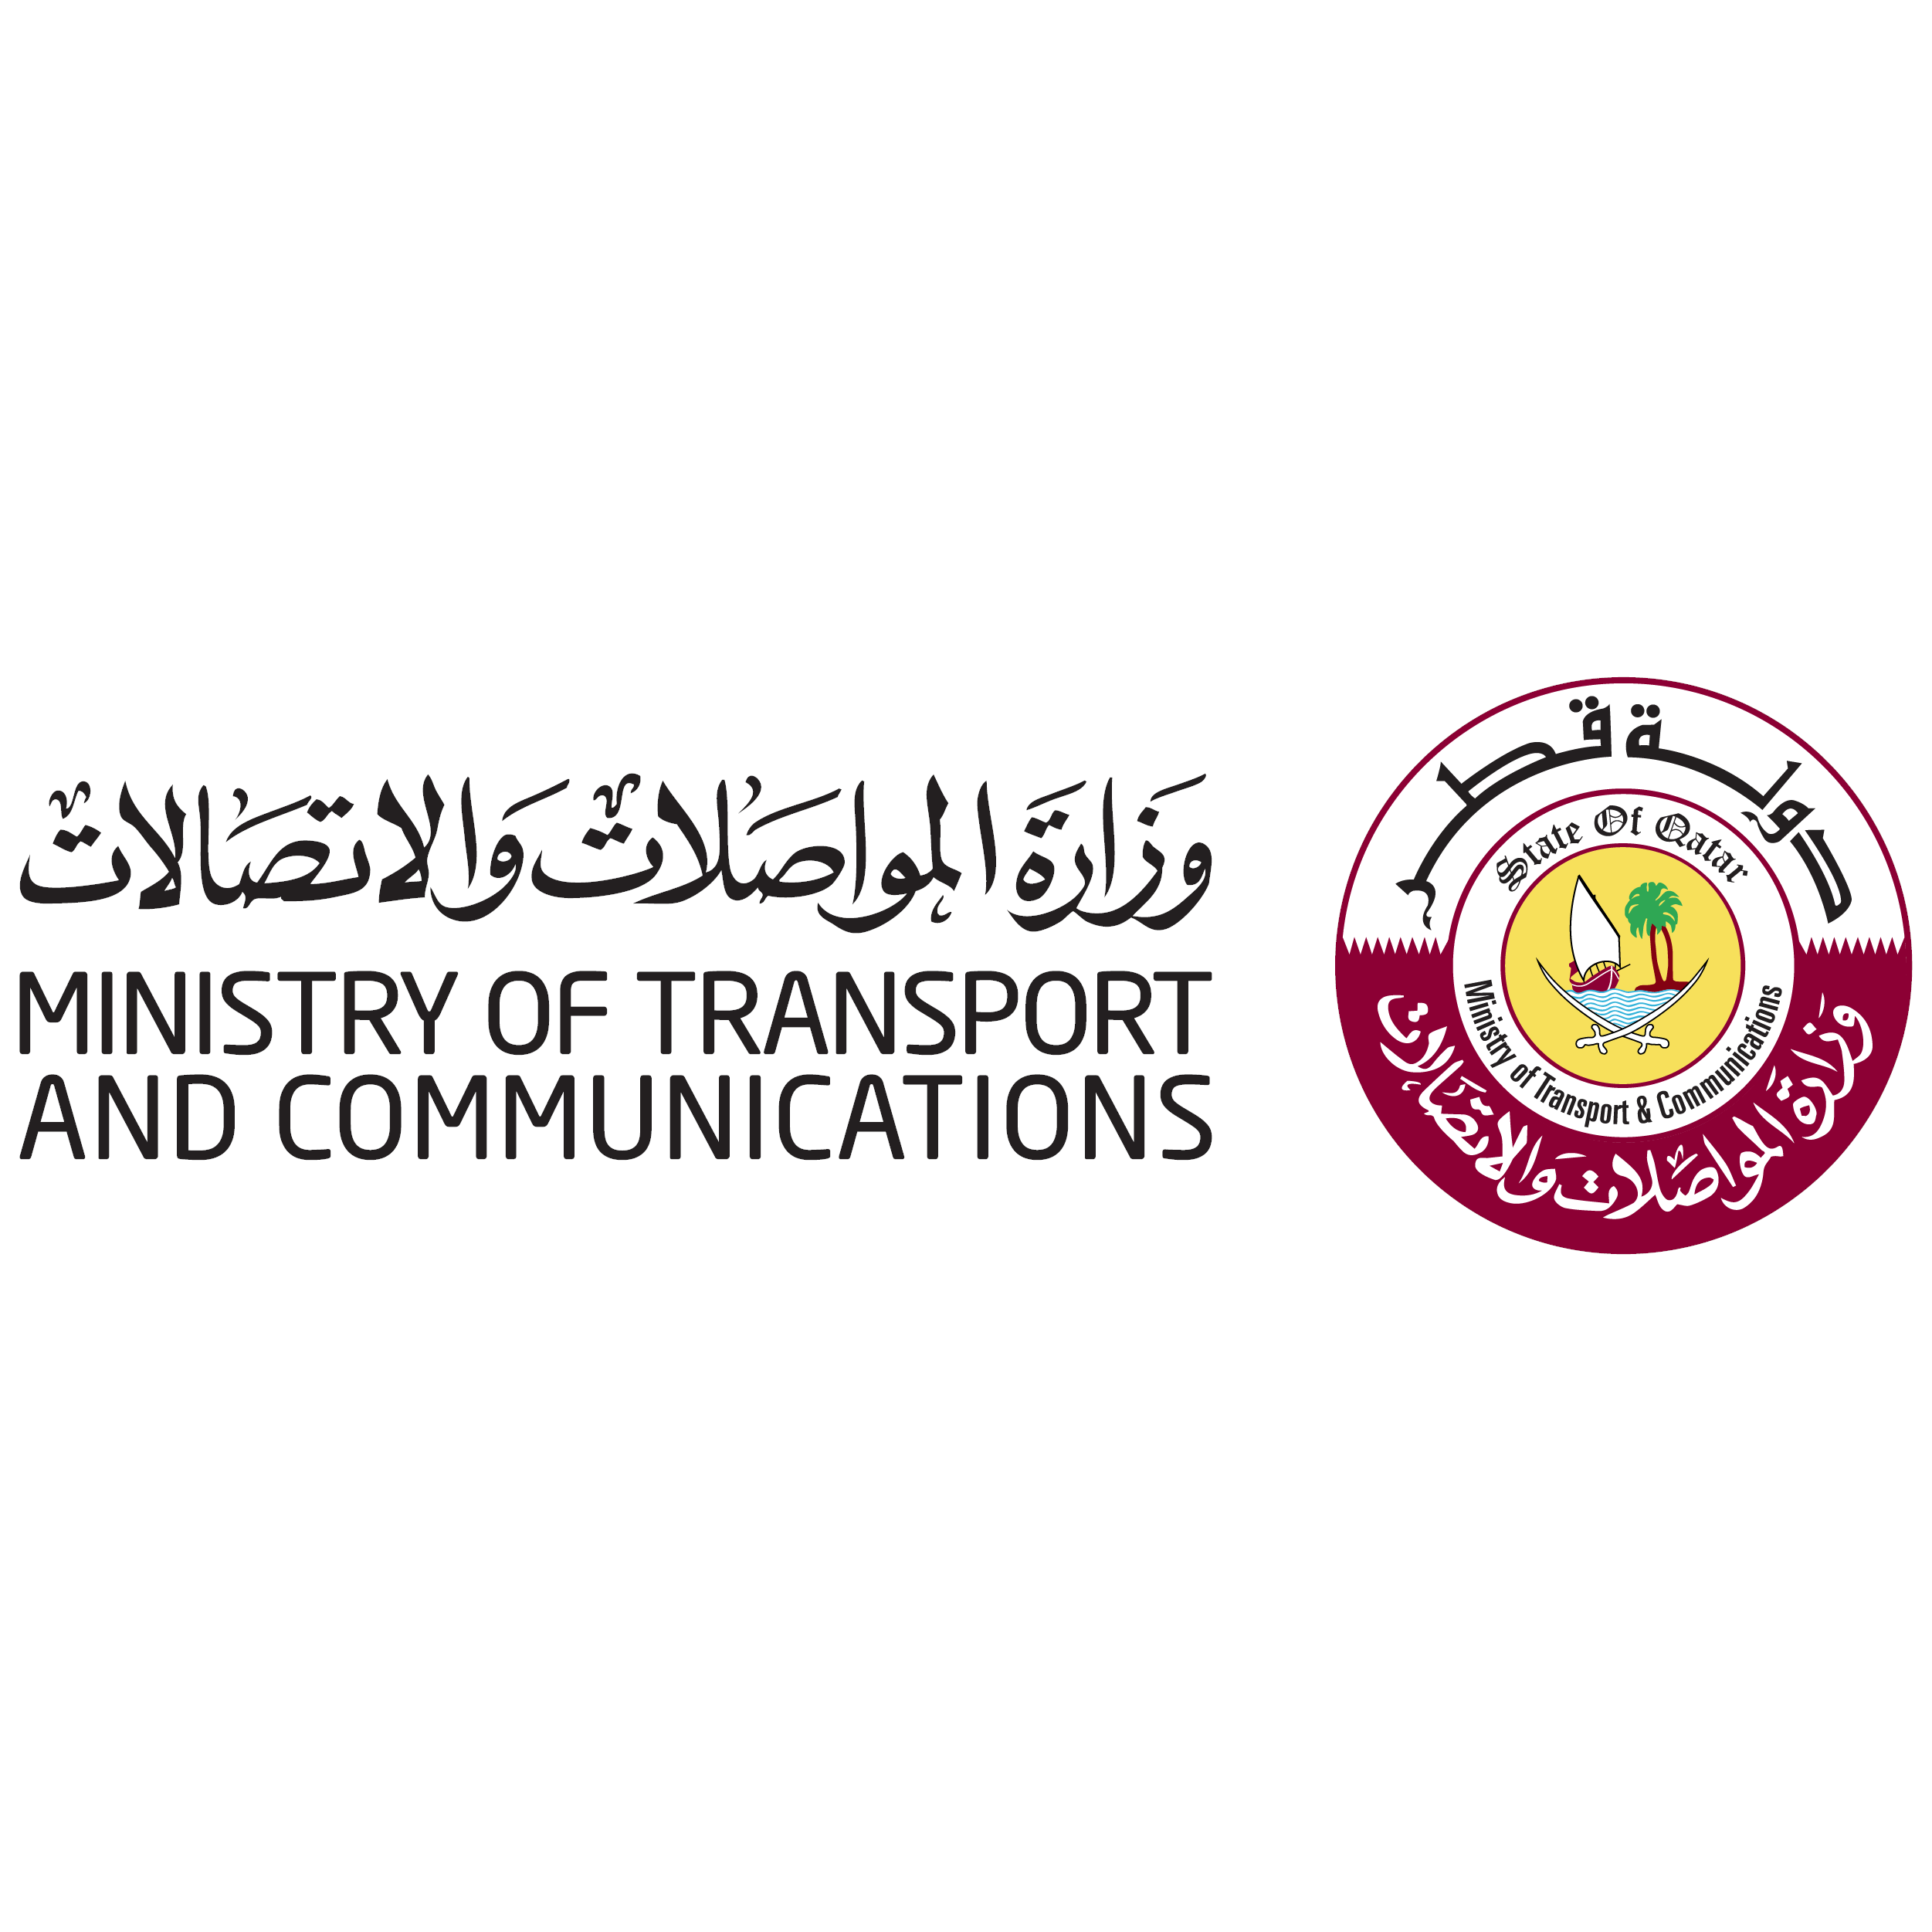 State of Qatar logo